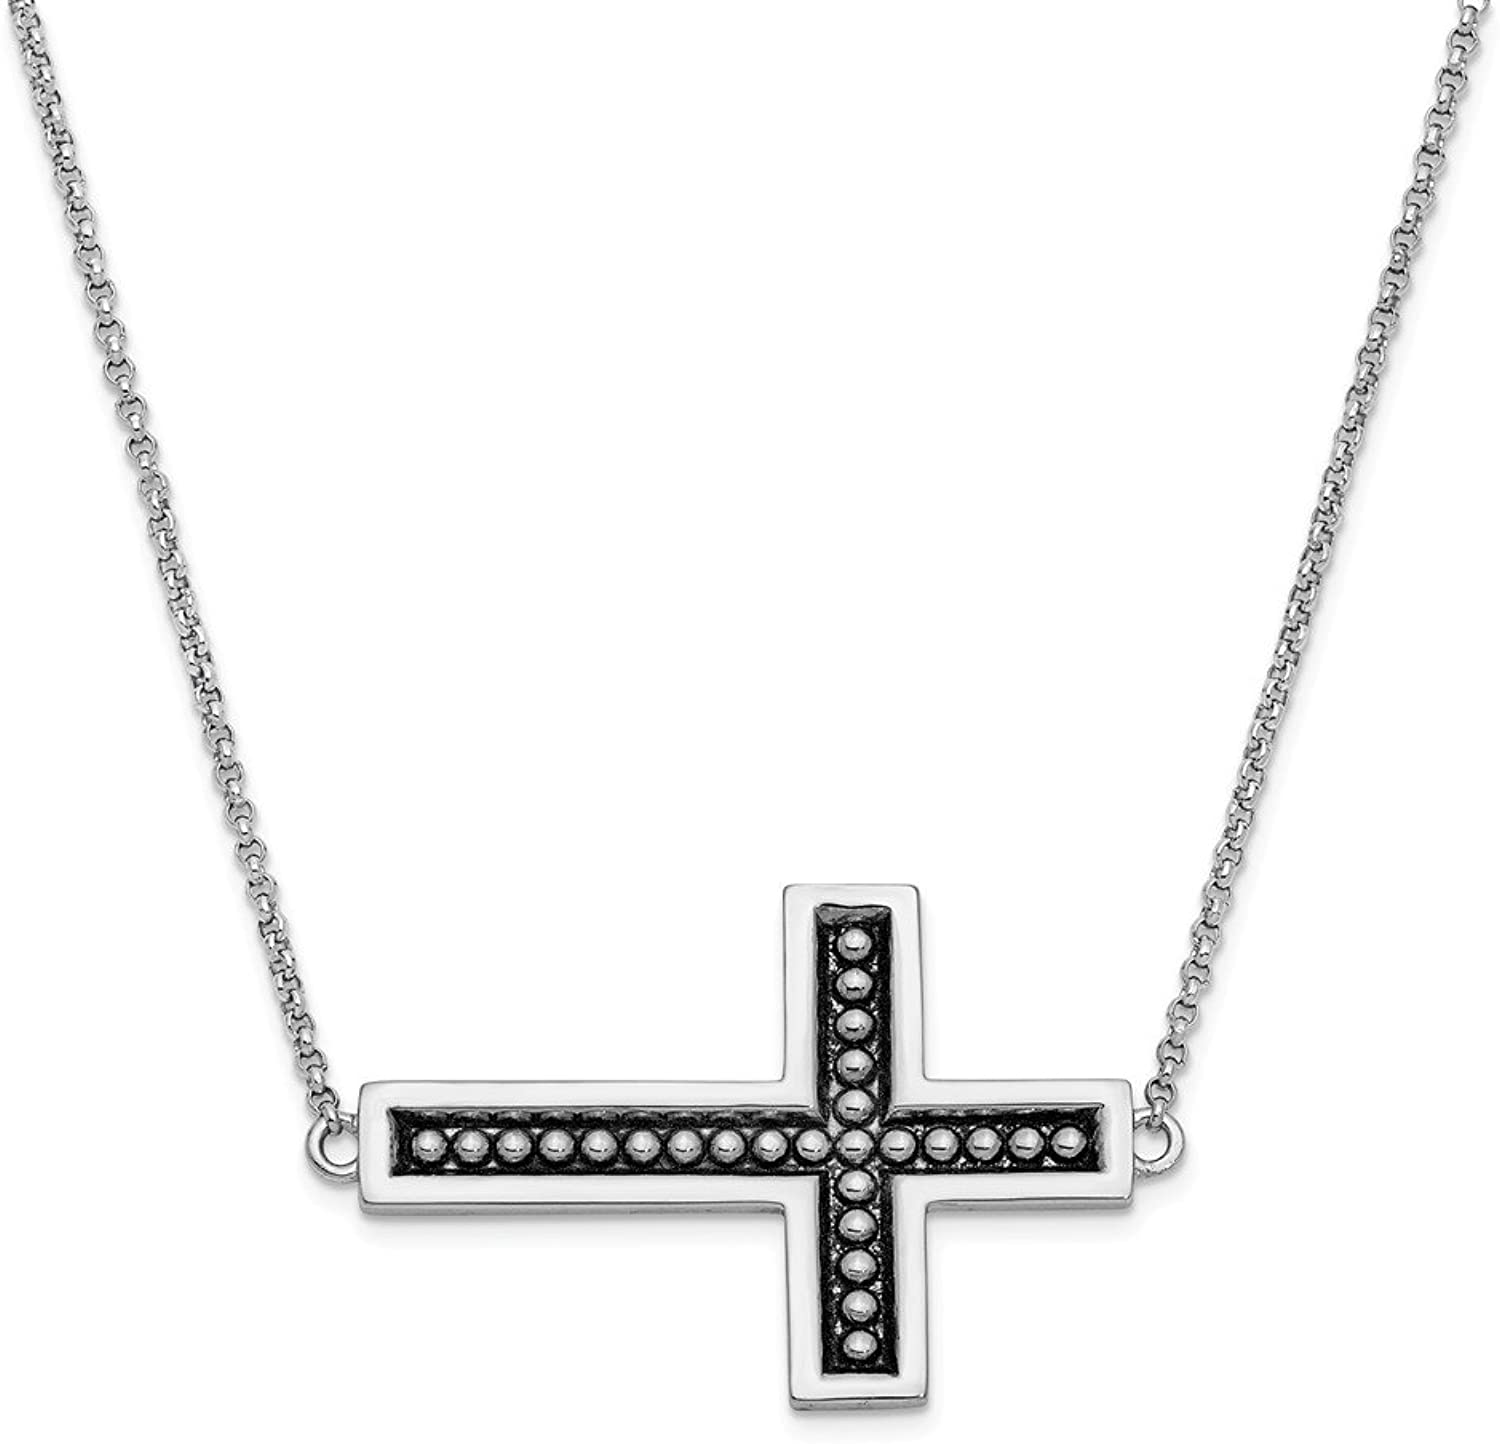 925 Sterling Silver Antiqued Cross 17.5in Necklace 3 4in ext